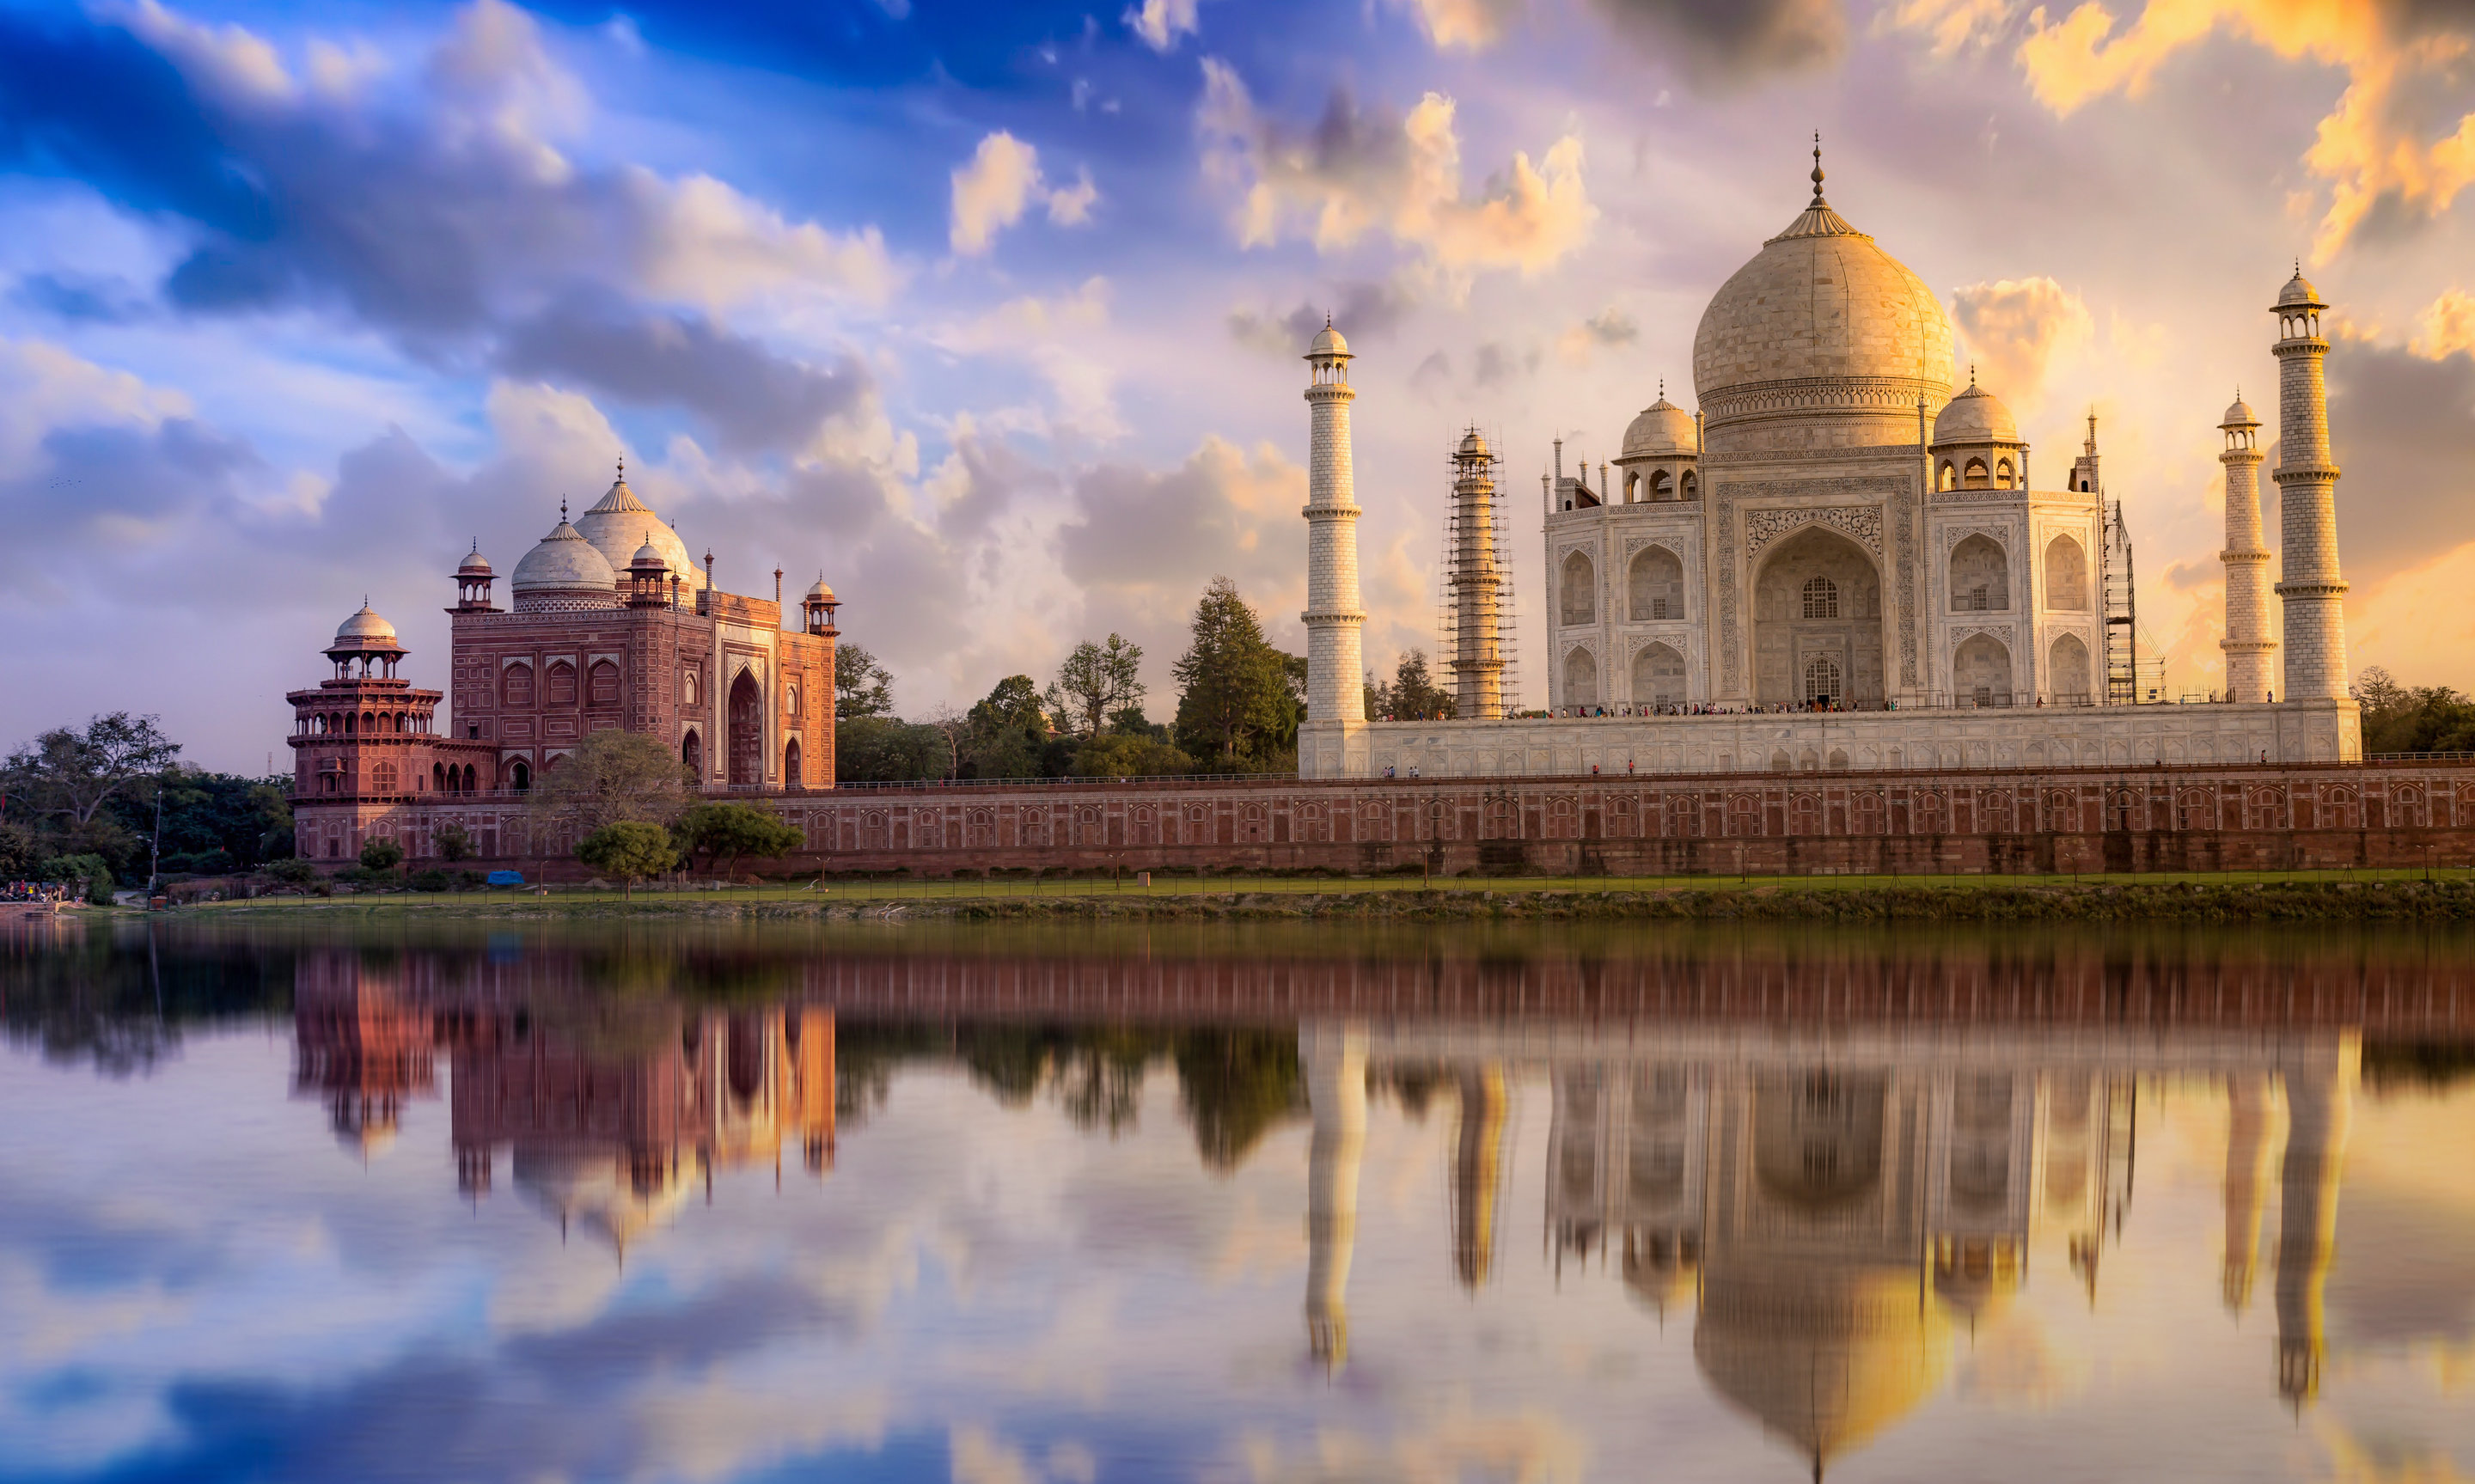 the taj mahal is wasting away and it may soon hit the point of no